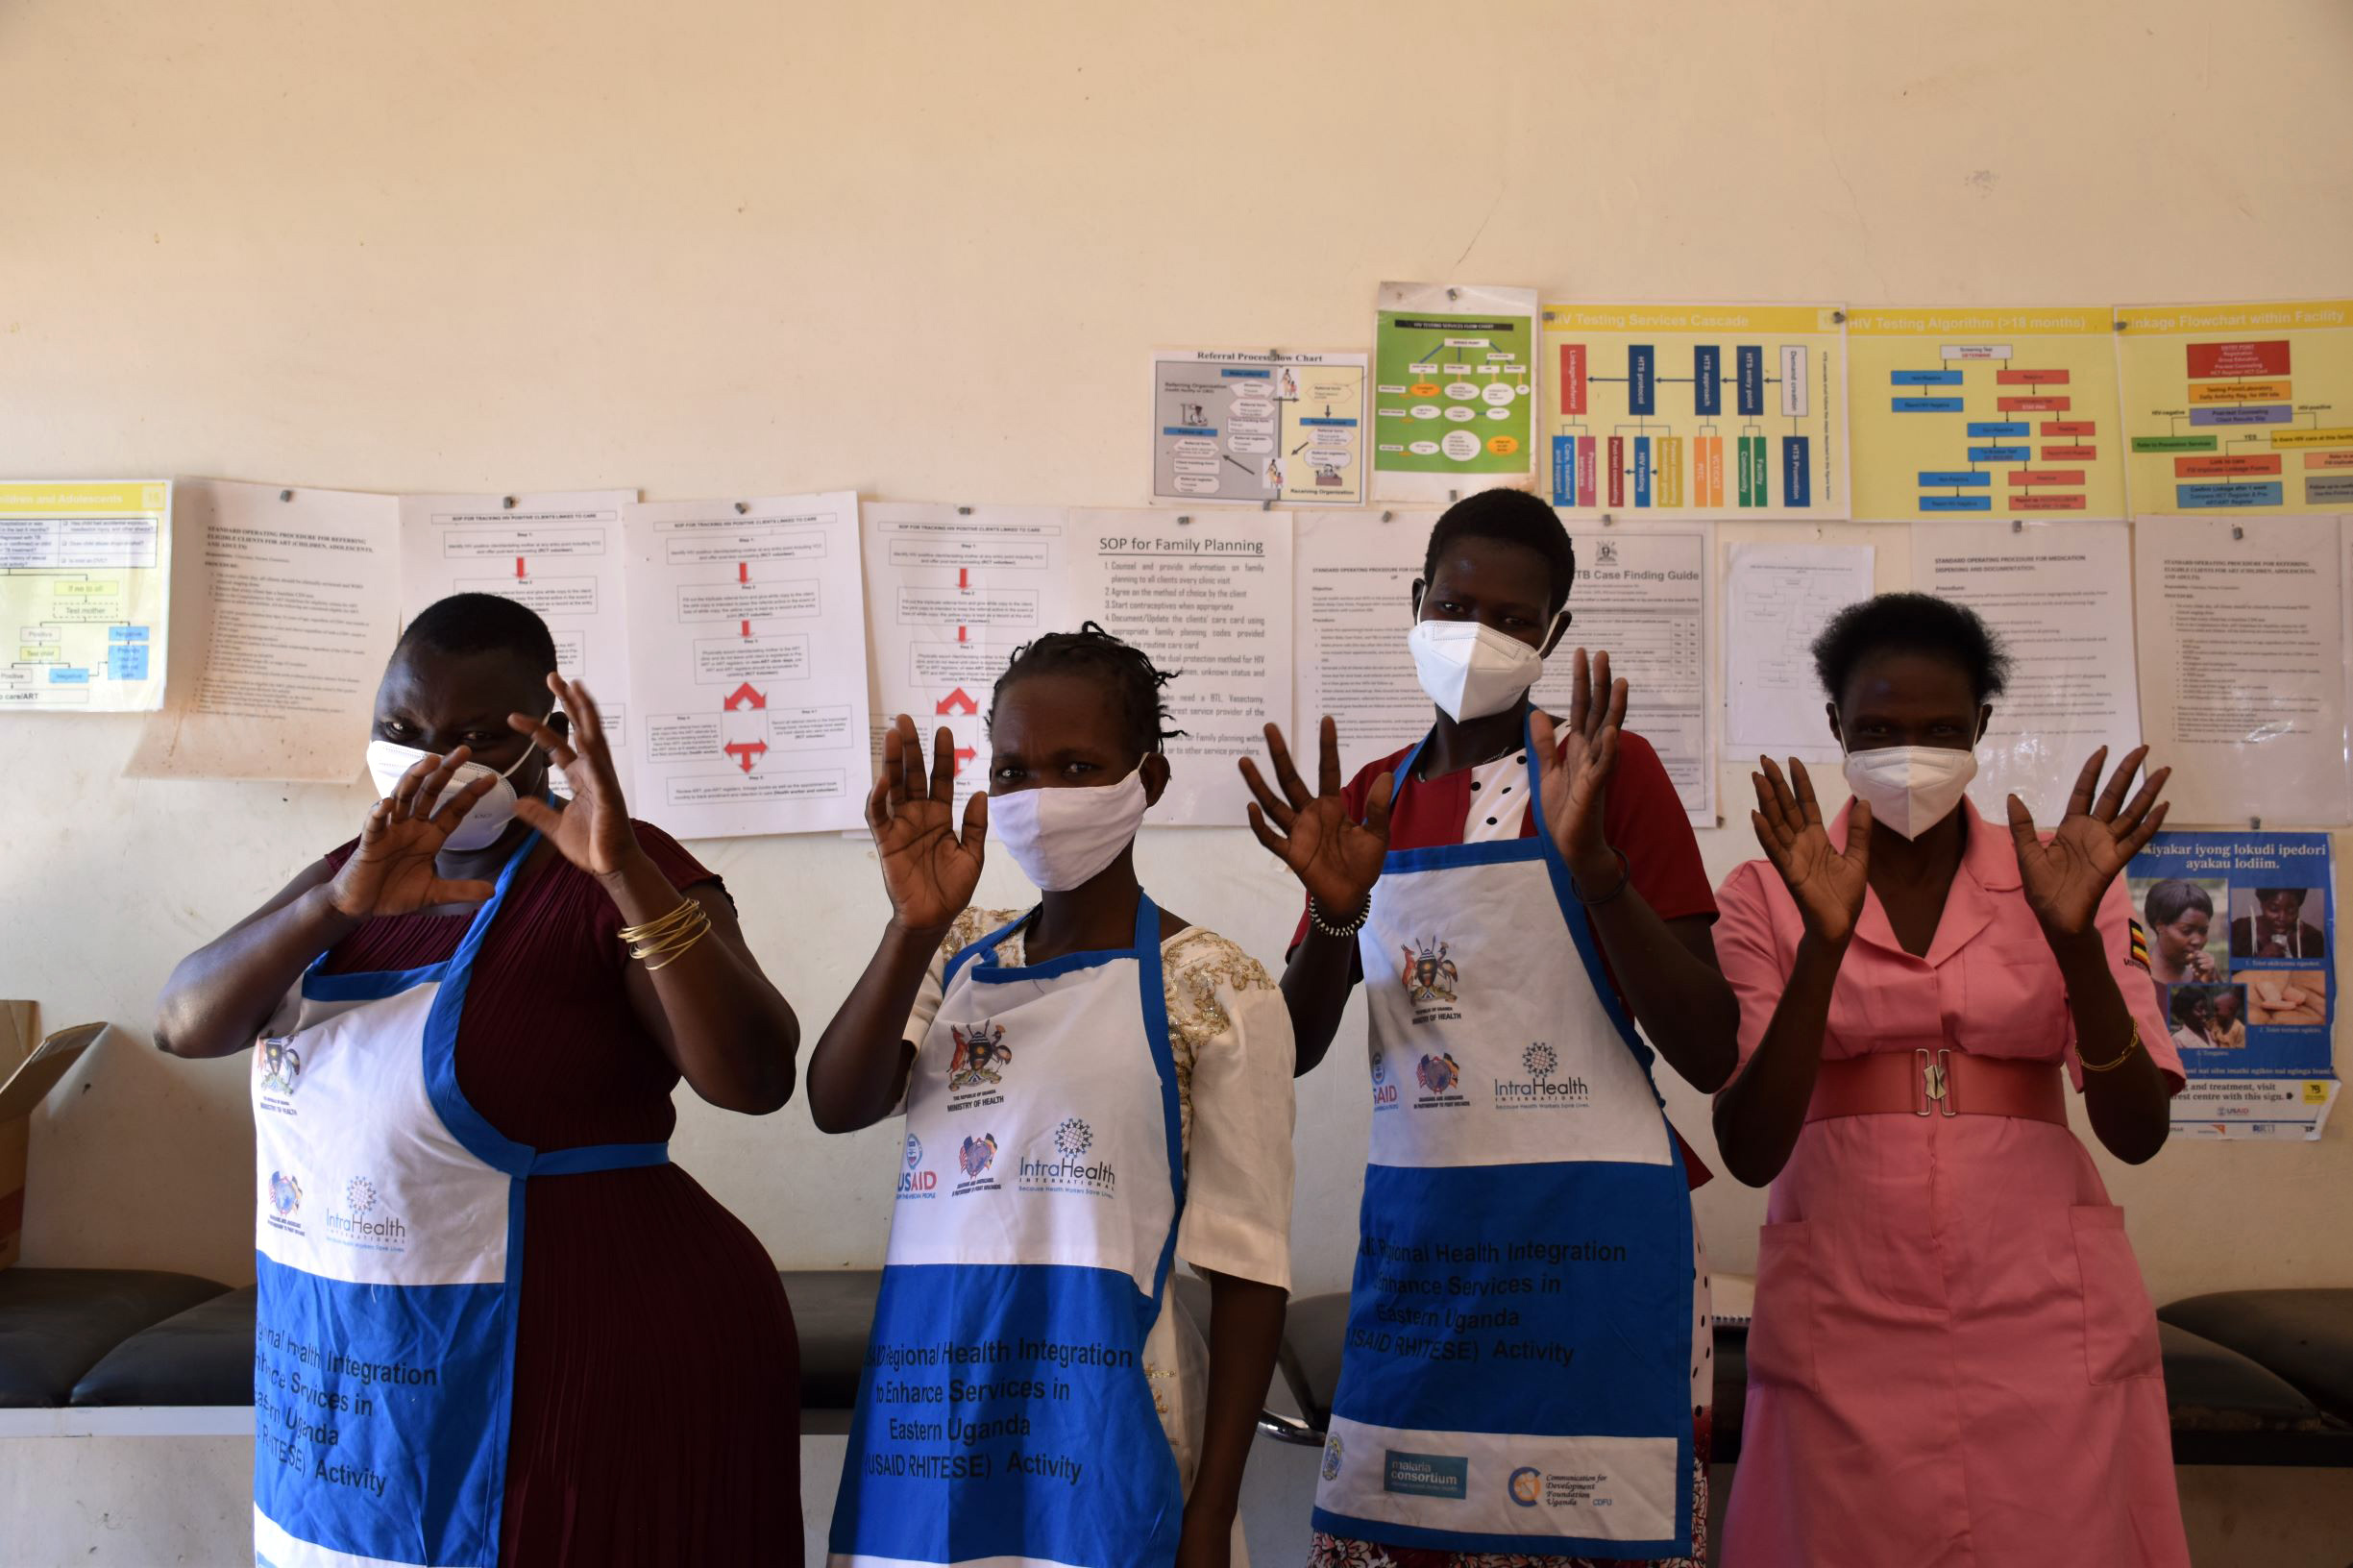 Lucy, Grace, Florence, and Hellen are working together to improve HIV services in Eastern Uganda. Photo by Irene Mirembe for IntraHealth International.